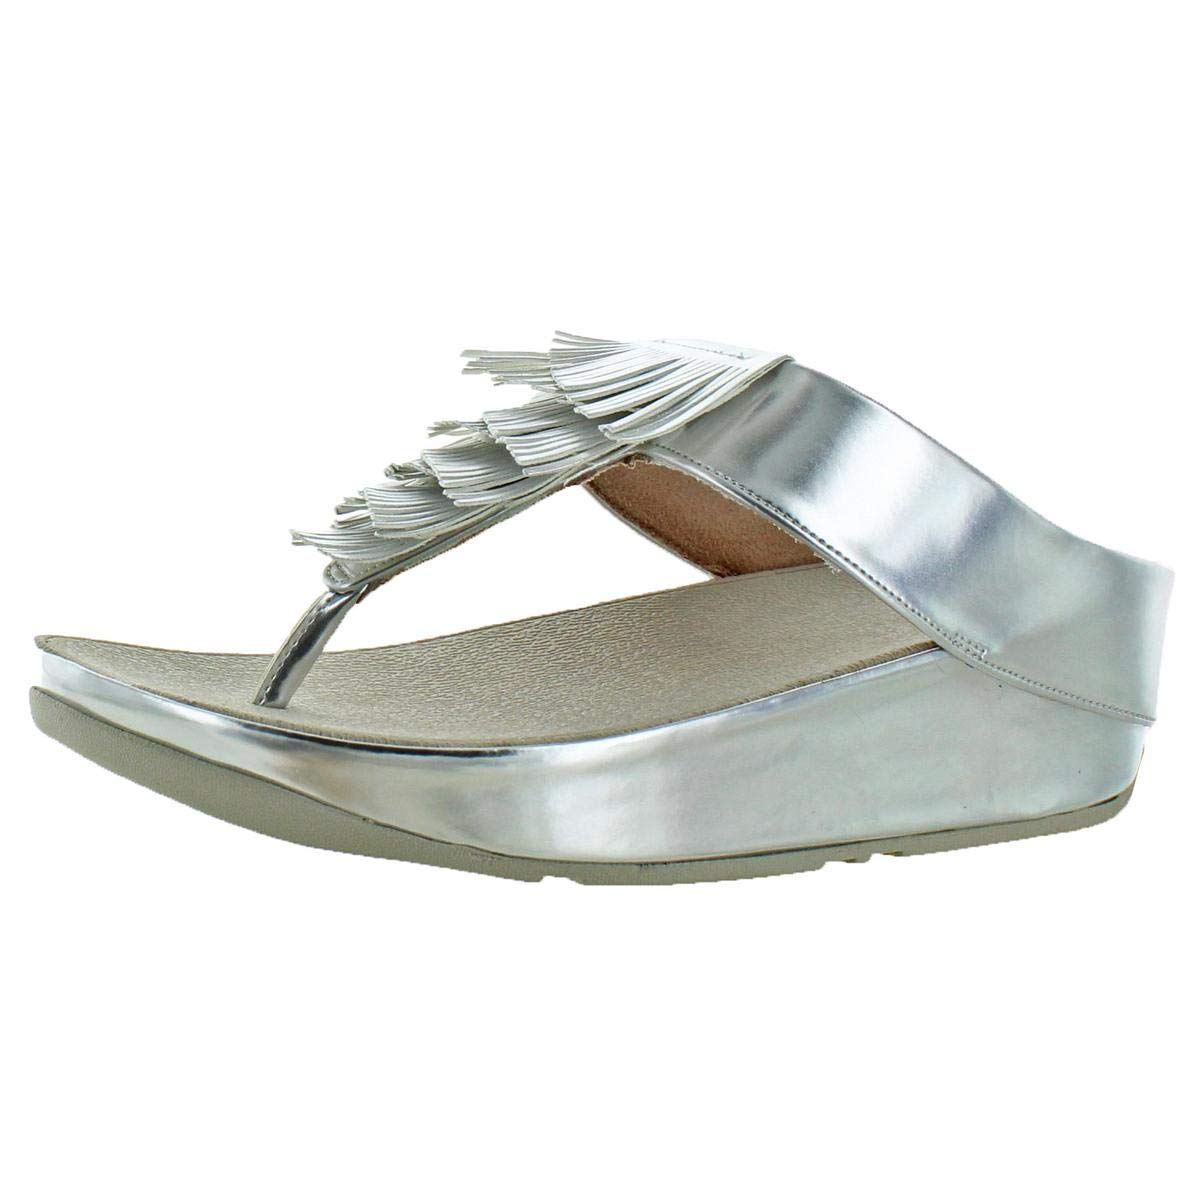 9d7ac174ed15 Galleon - FitFlop Women s Cha Cha Beaded Leather Slip-on Sandals Shoes  Silver Size 8